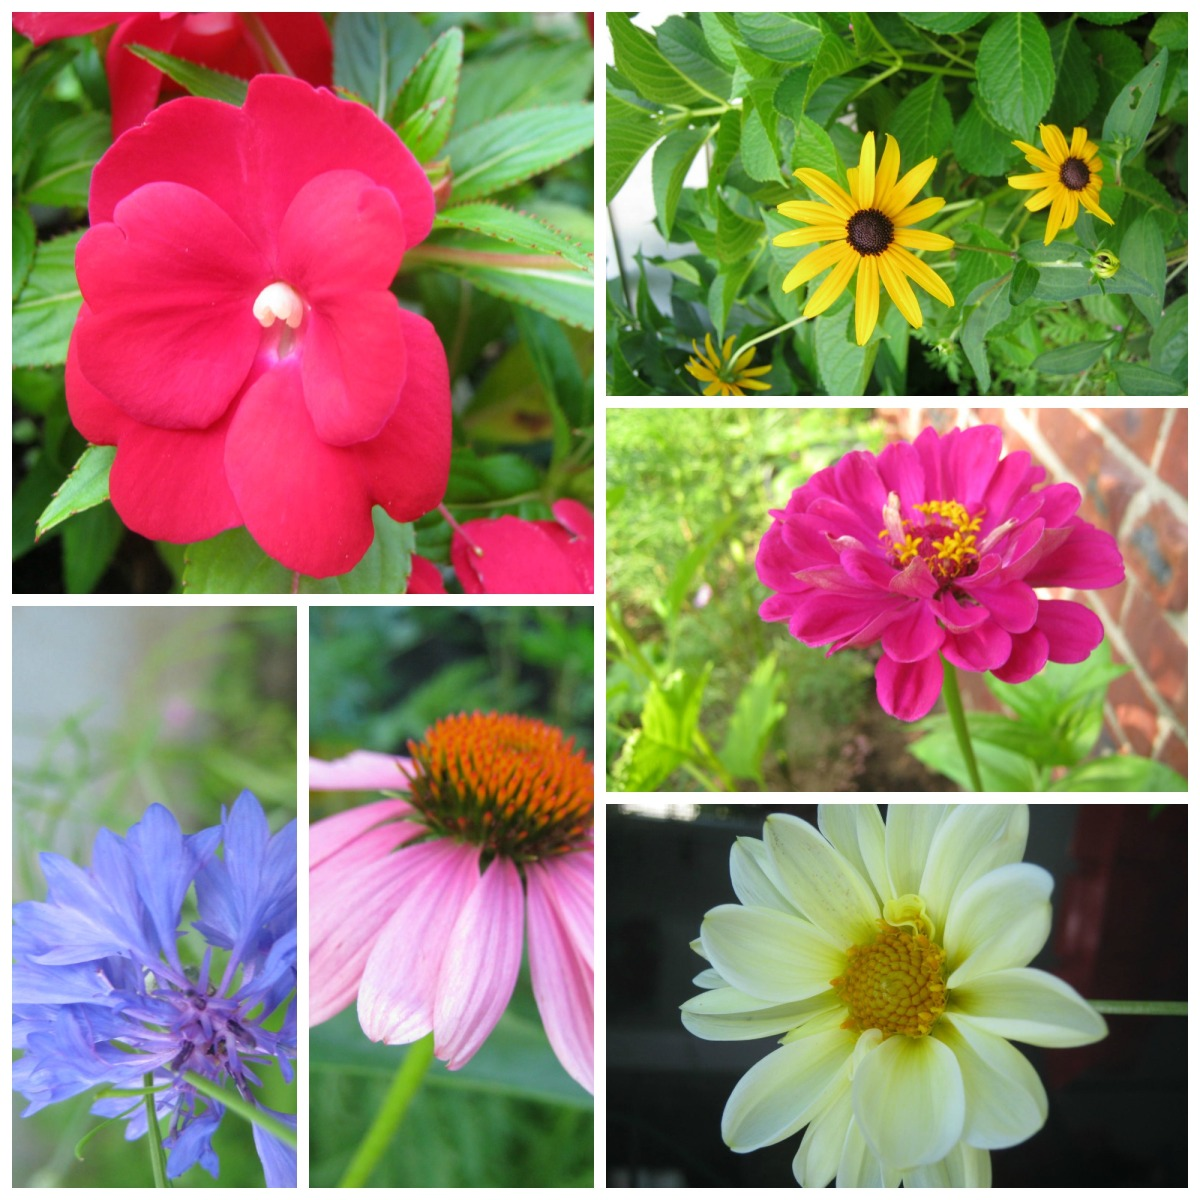 These flowers are growing in my garden this week.